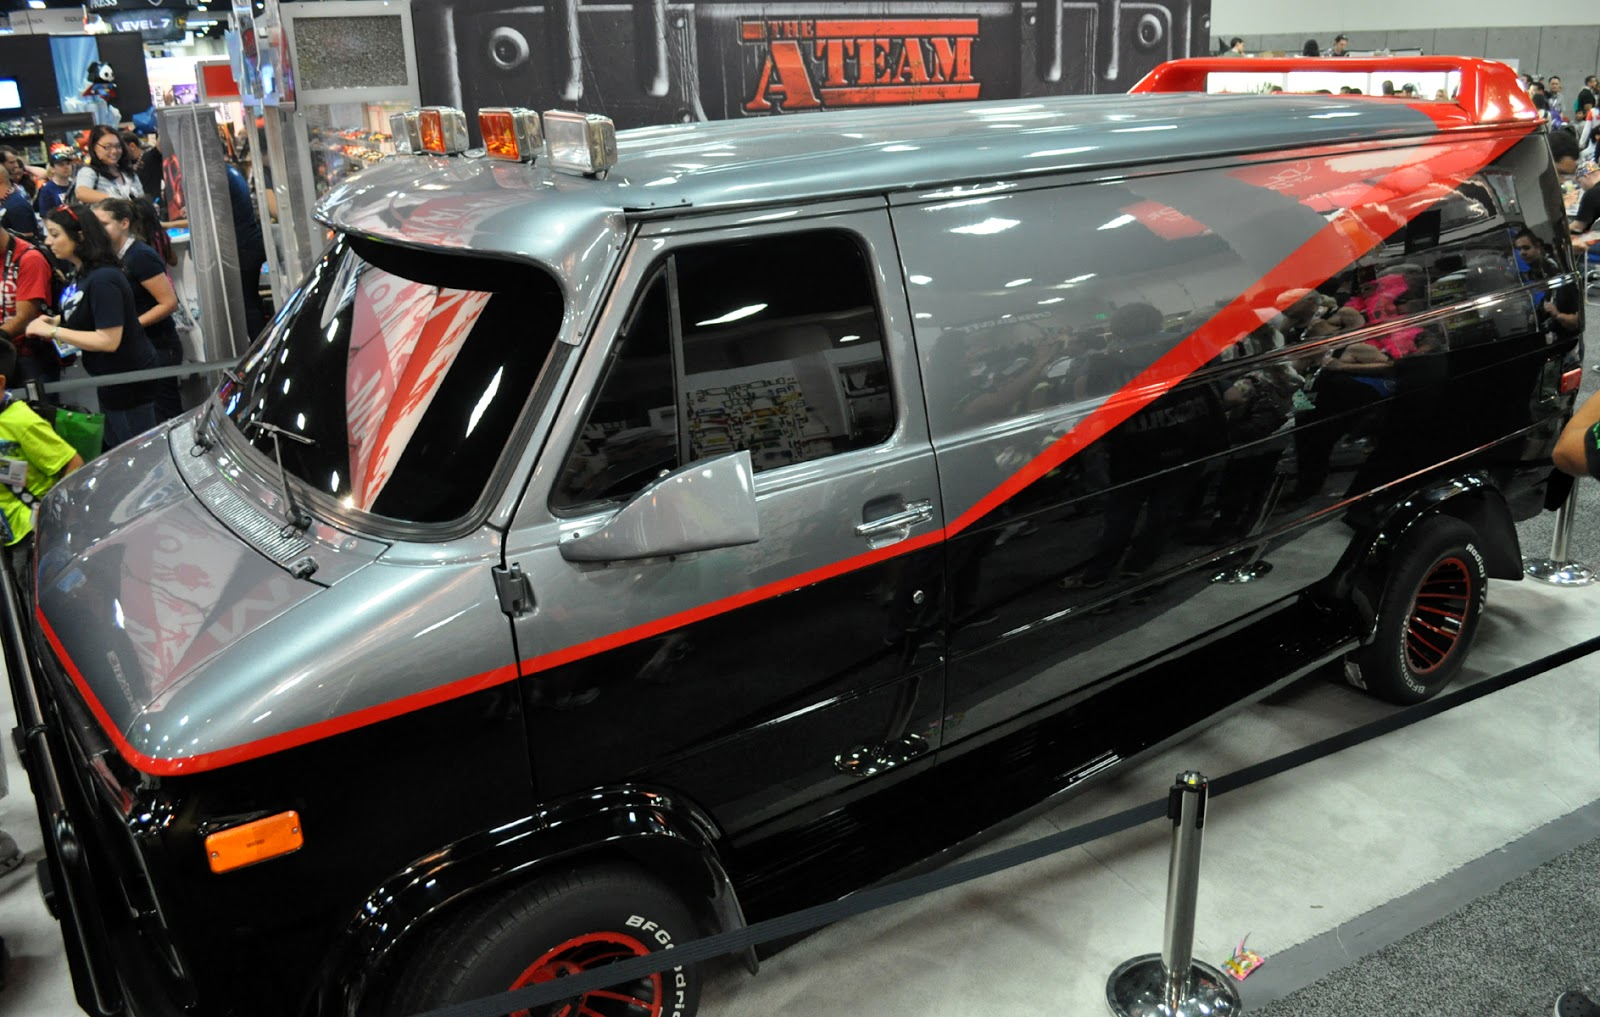 Just A Car Guy The Team Van From Recent Movie Was At Comic Con